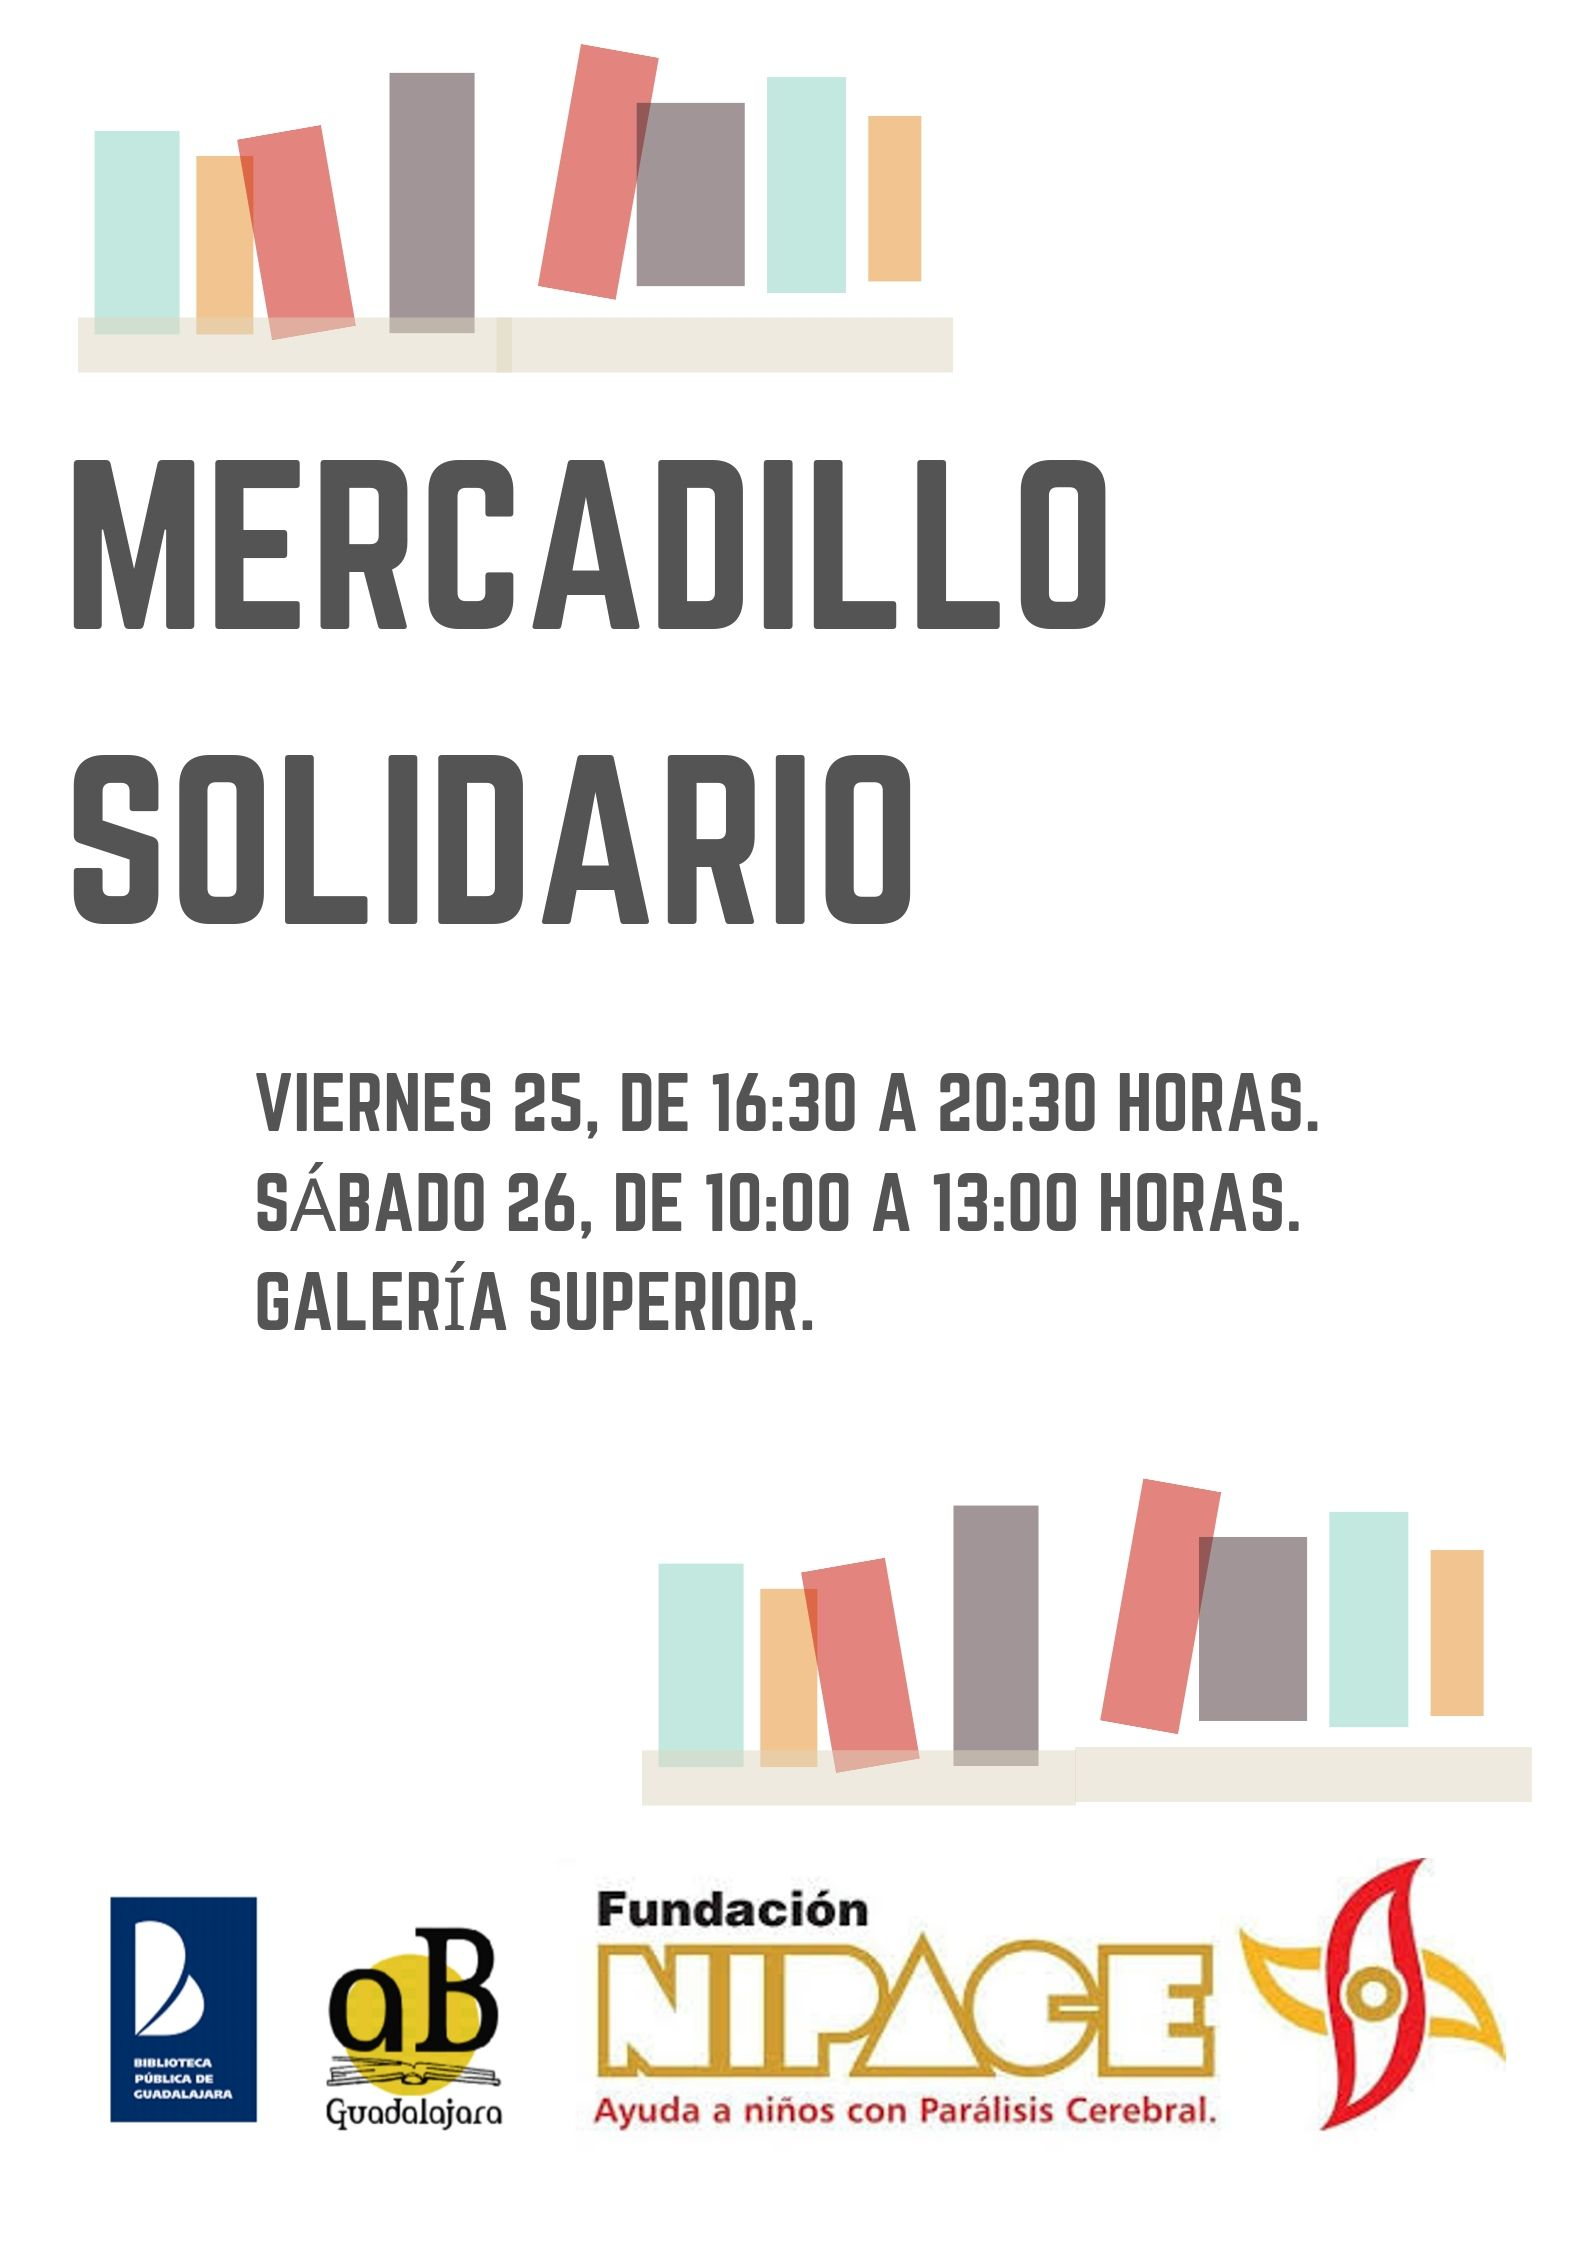 Mercadillo solidario a beneficio de Nipace